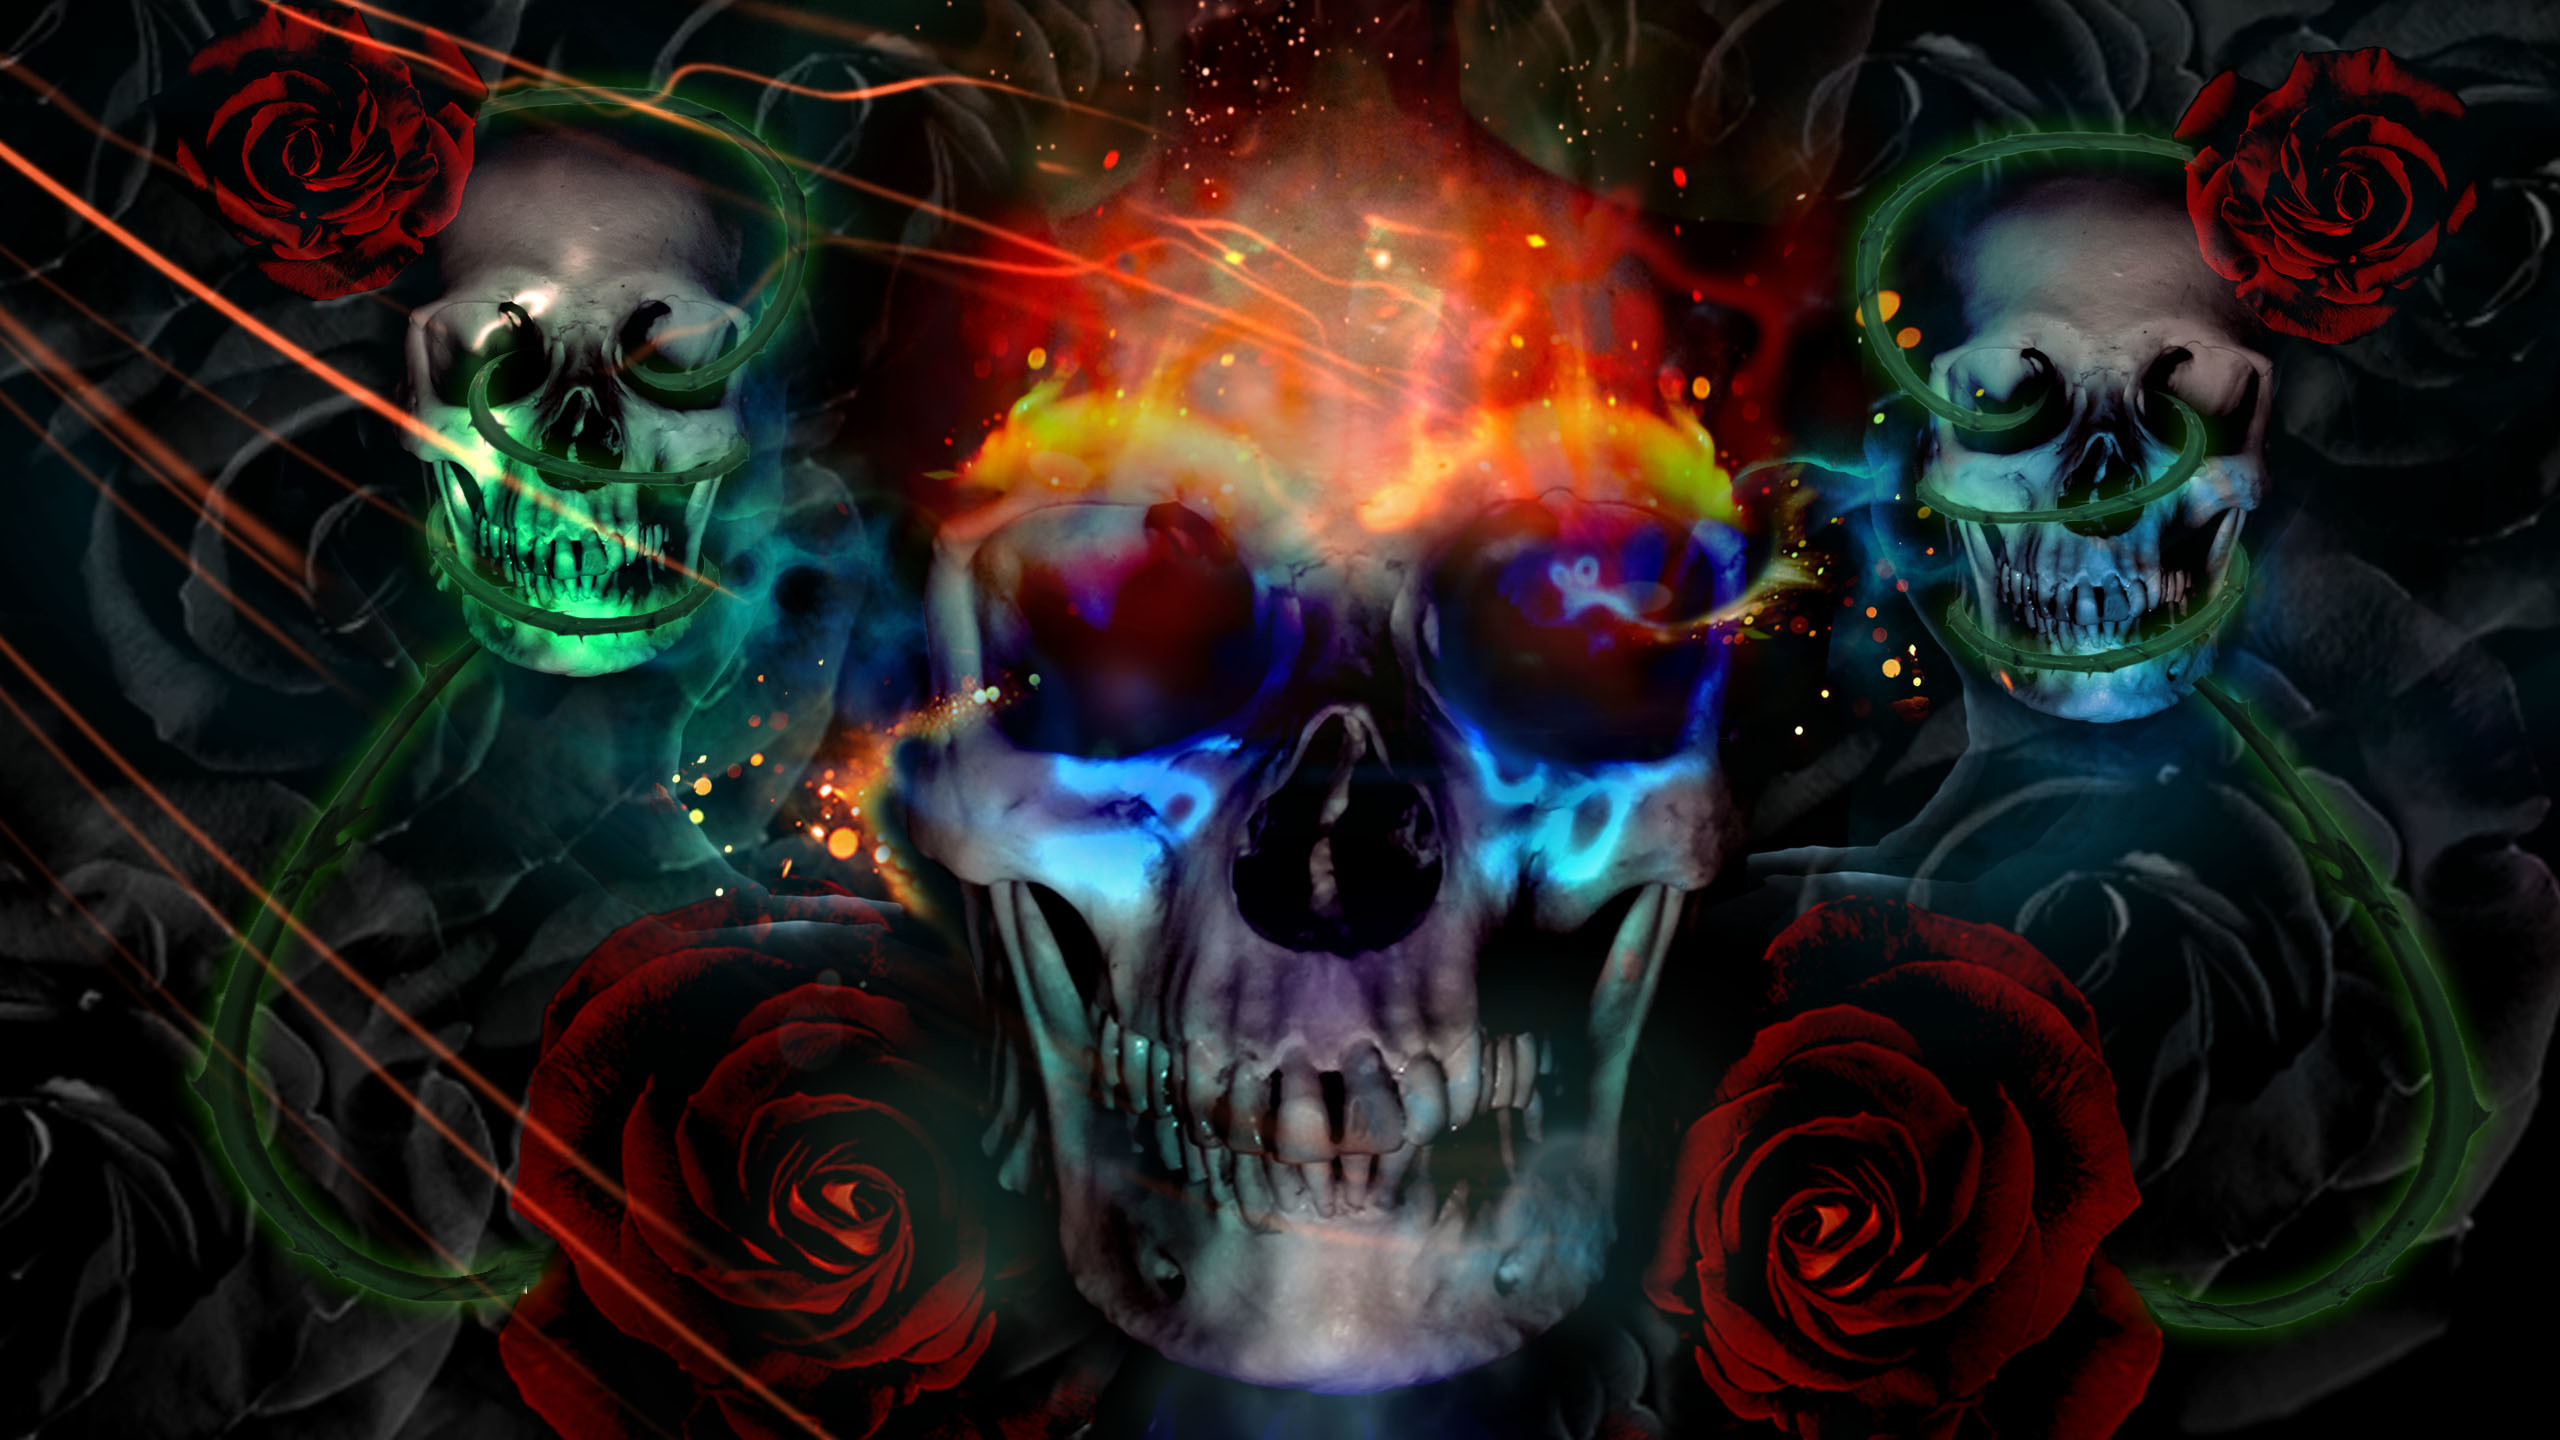 2560x1440 ... Images of Awesome Skull Wallpapers Guns - #SC ...